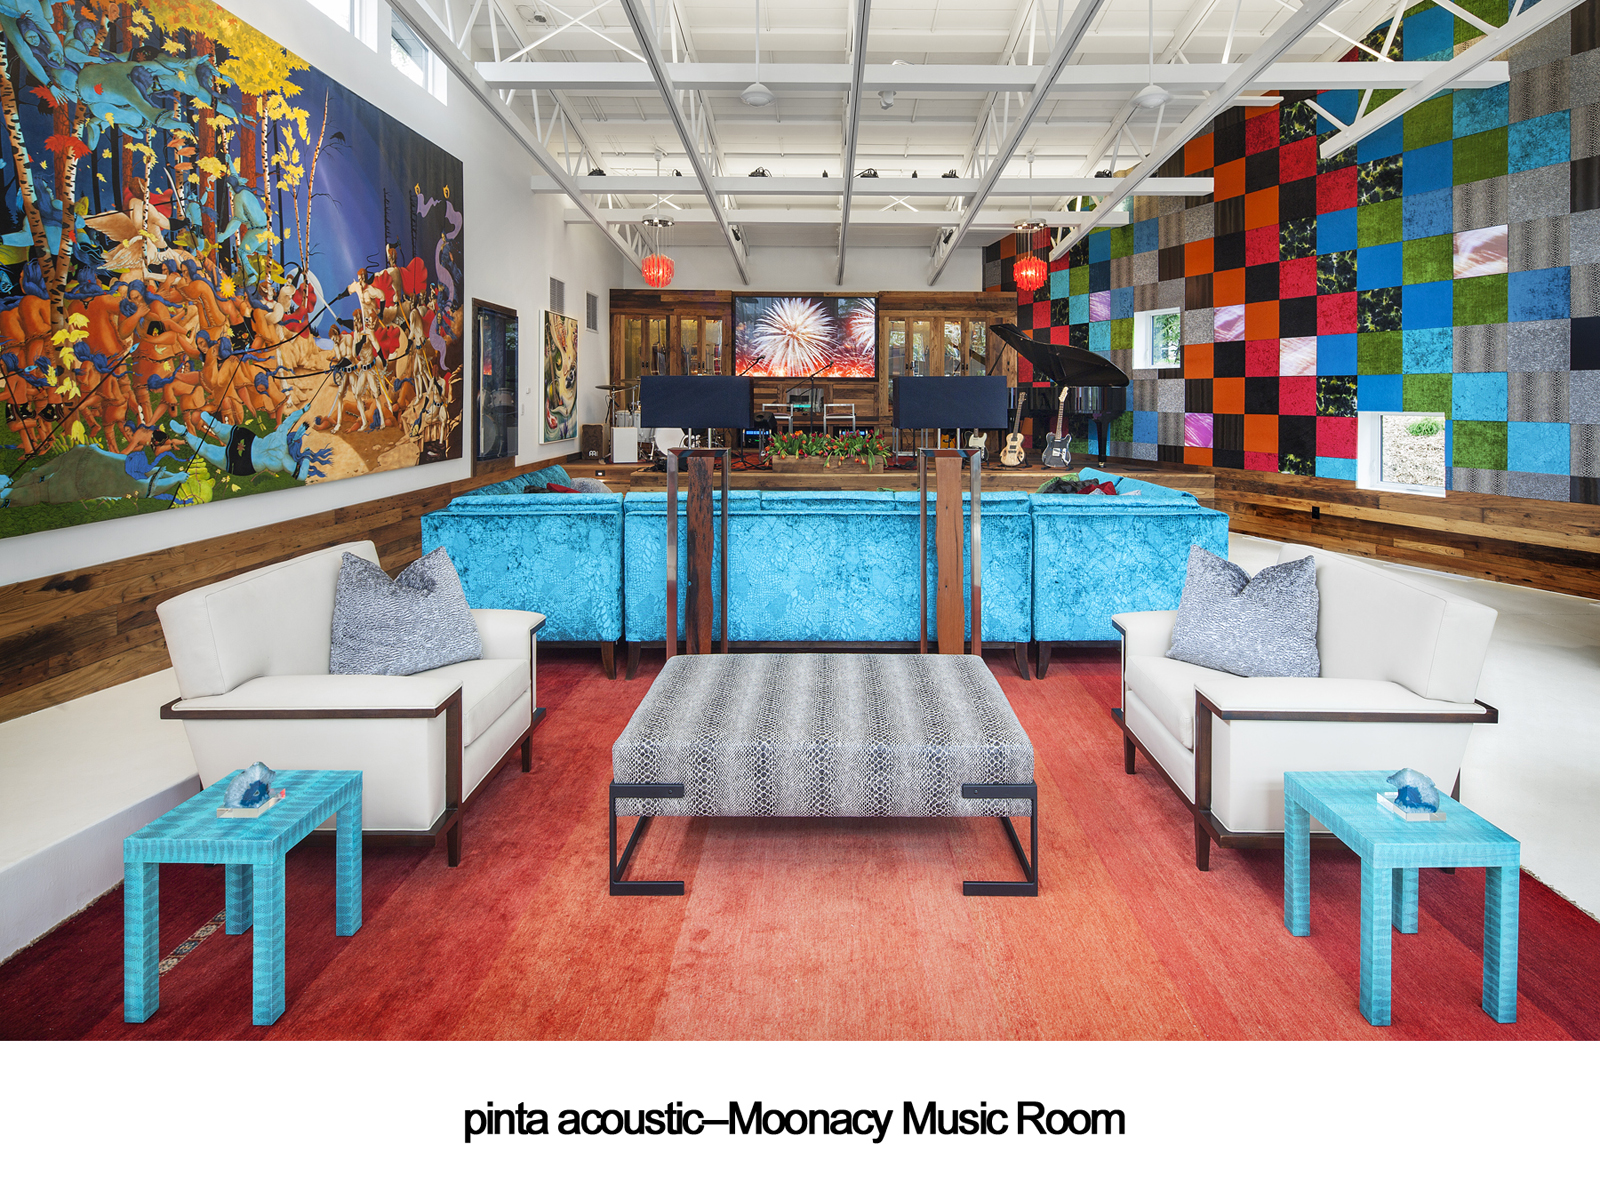 pinta acoustic, inc.--Moonacy Music Room, Stage